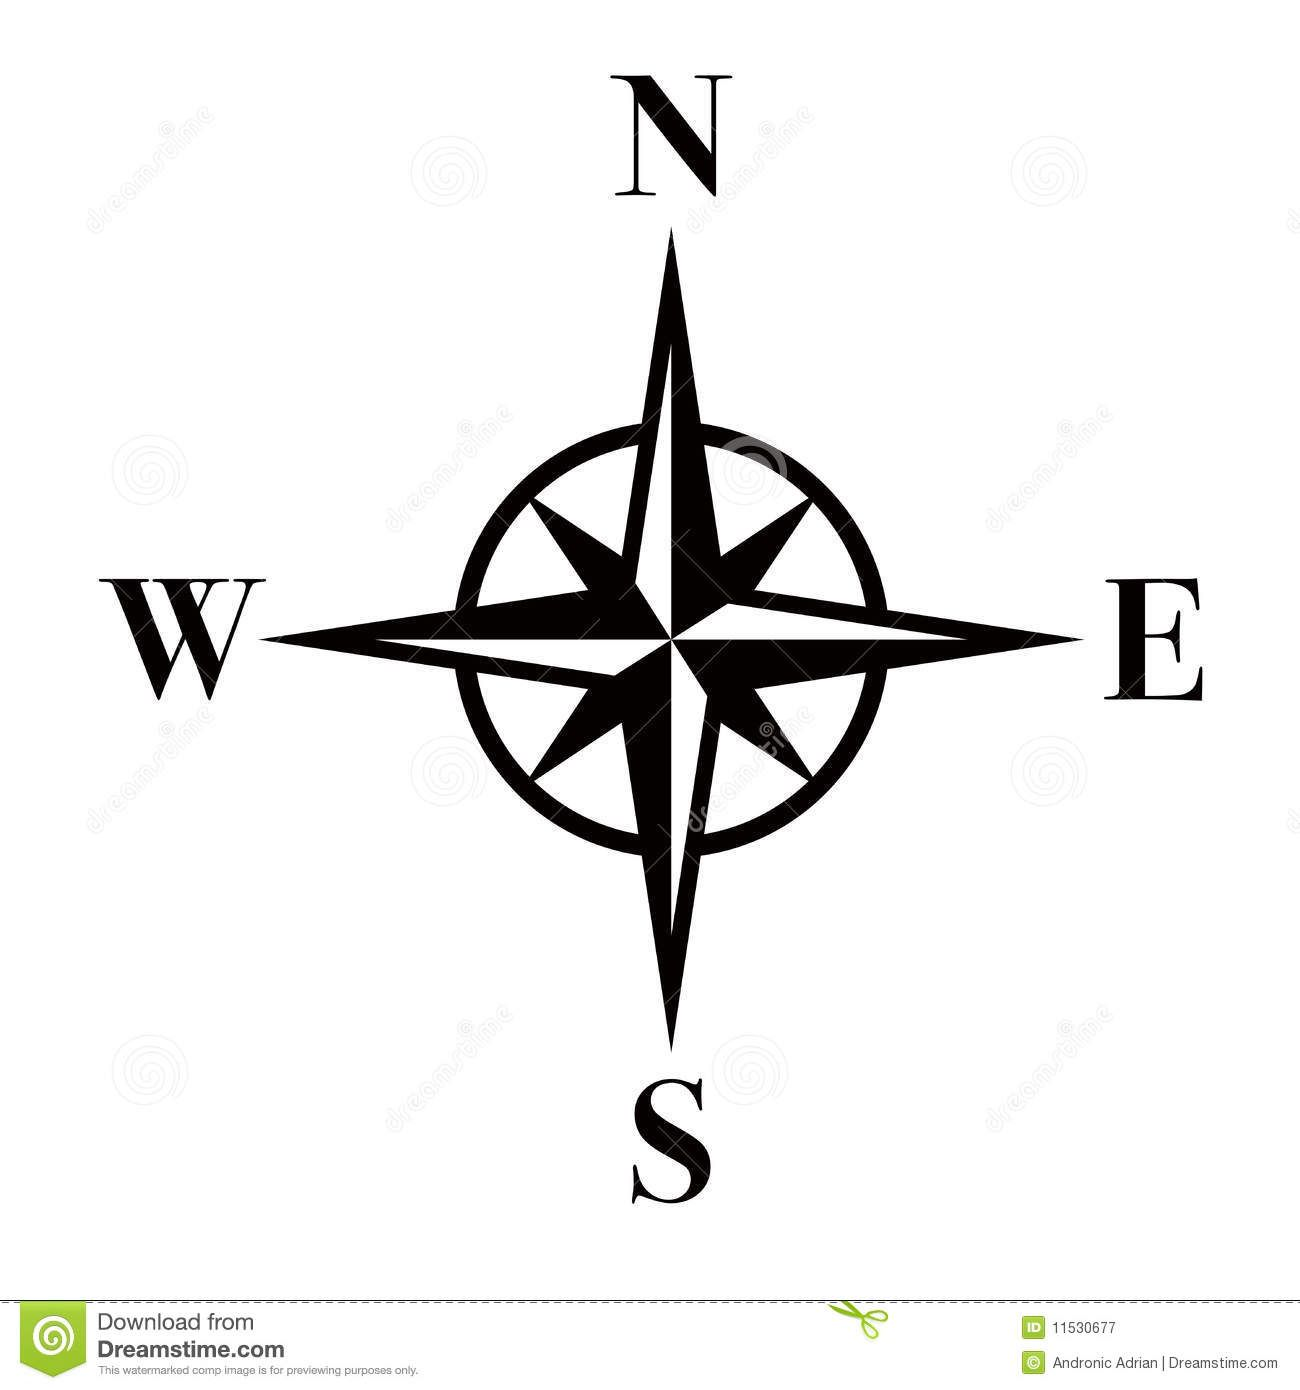 Compass clipart abstract. Eps download from over